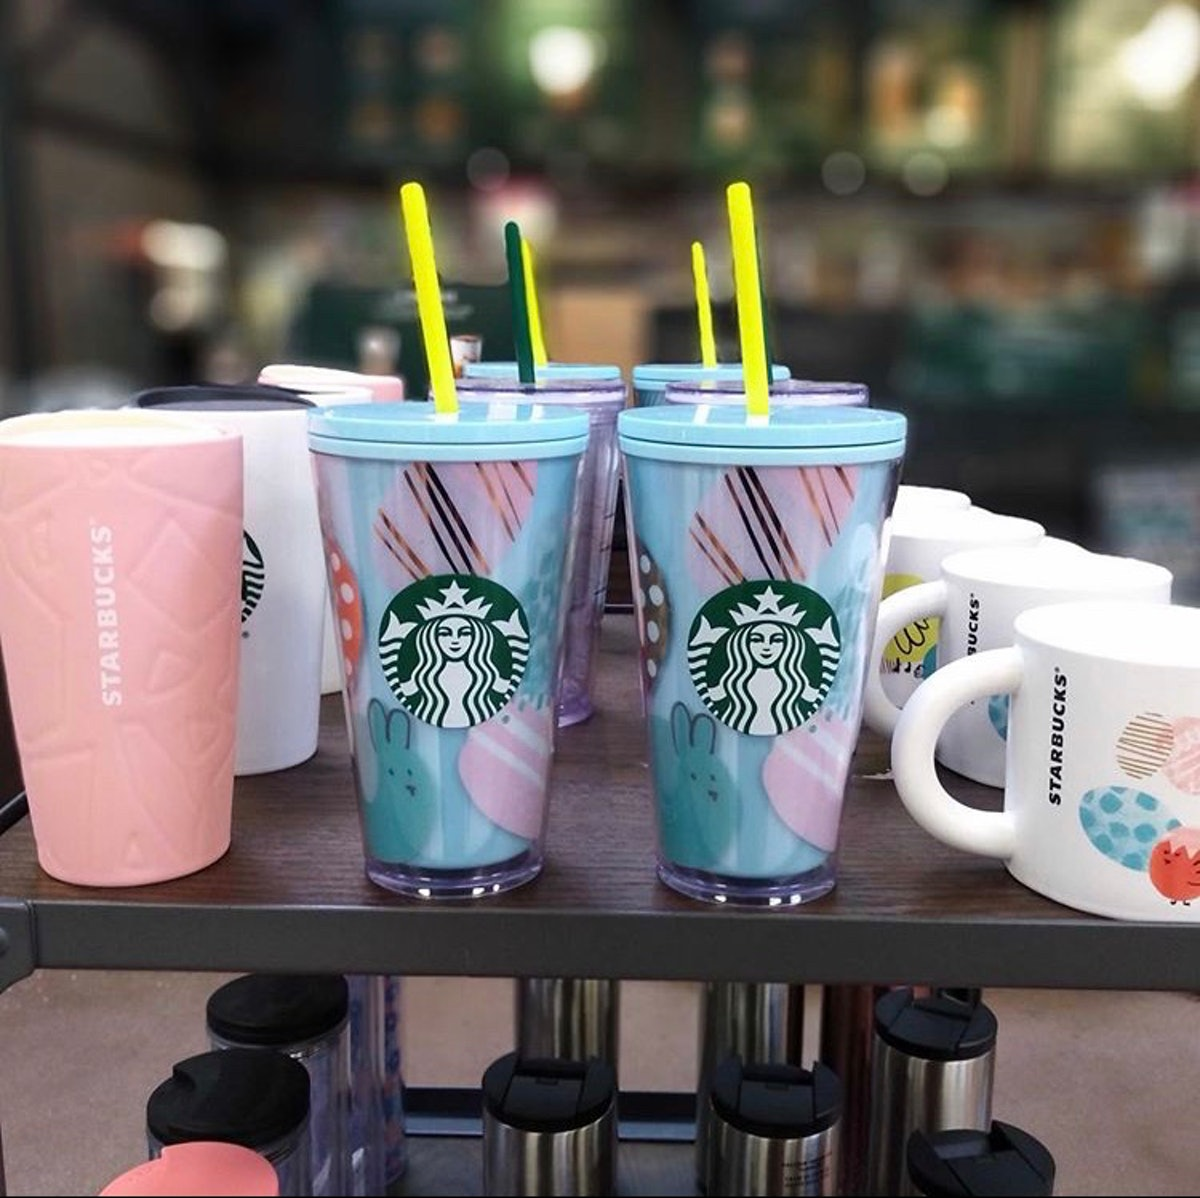 Starbucks' Spring 2020 Cold Cups and Tumblers include Easter-inspired designs.